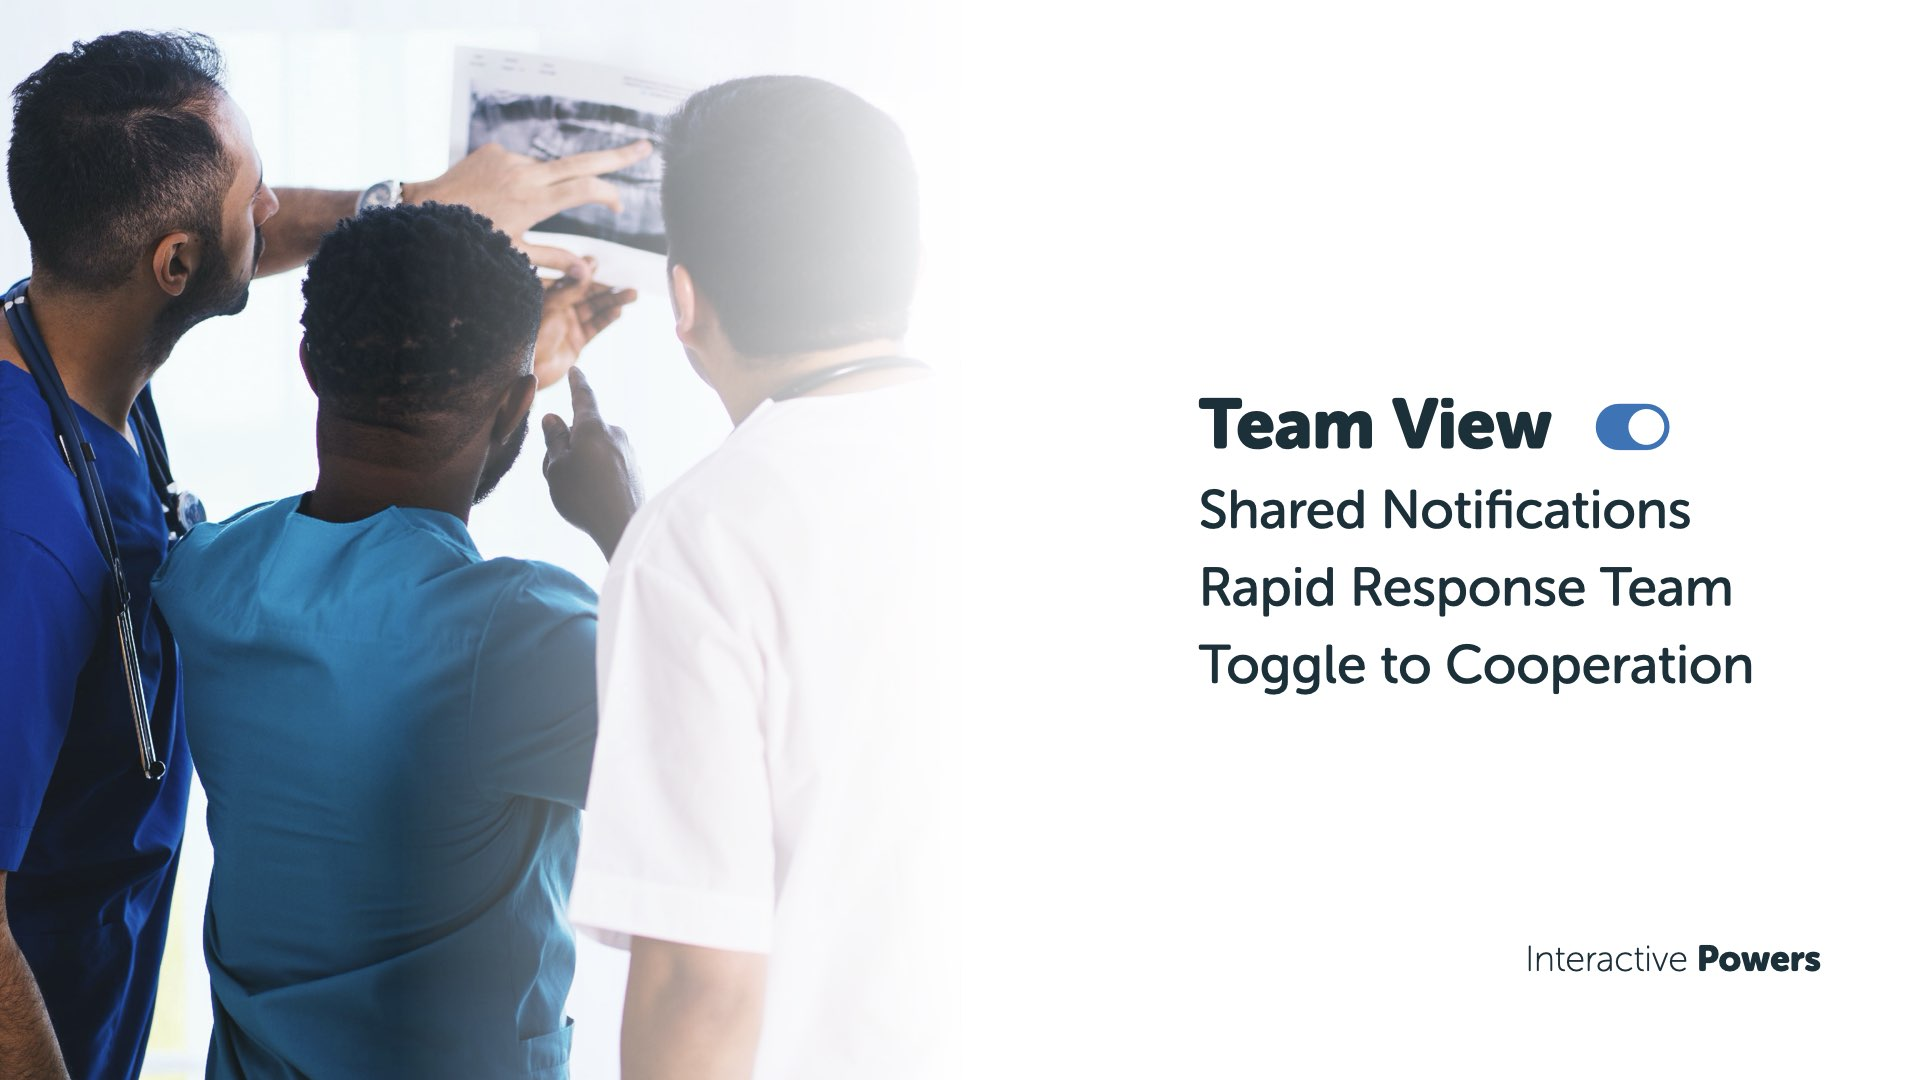 Virgo Healthcare - Team View